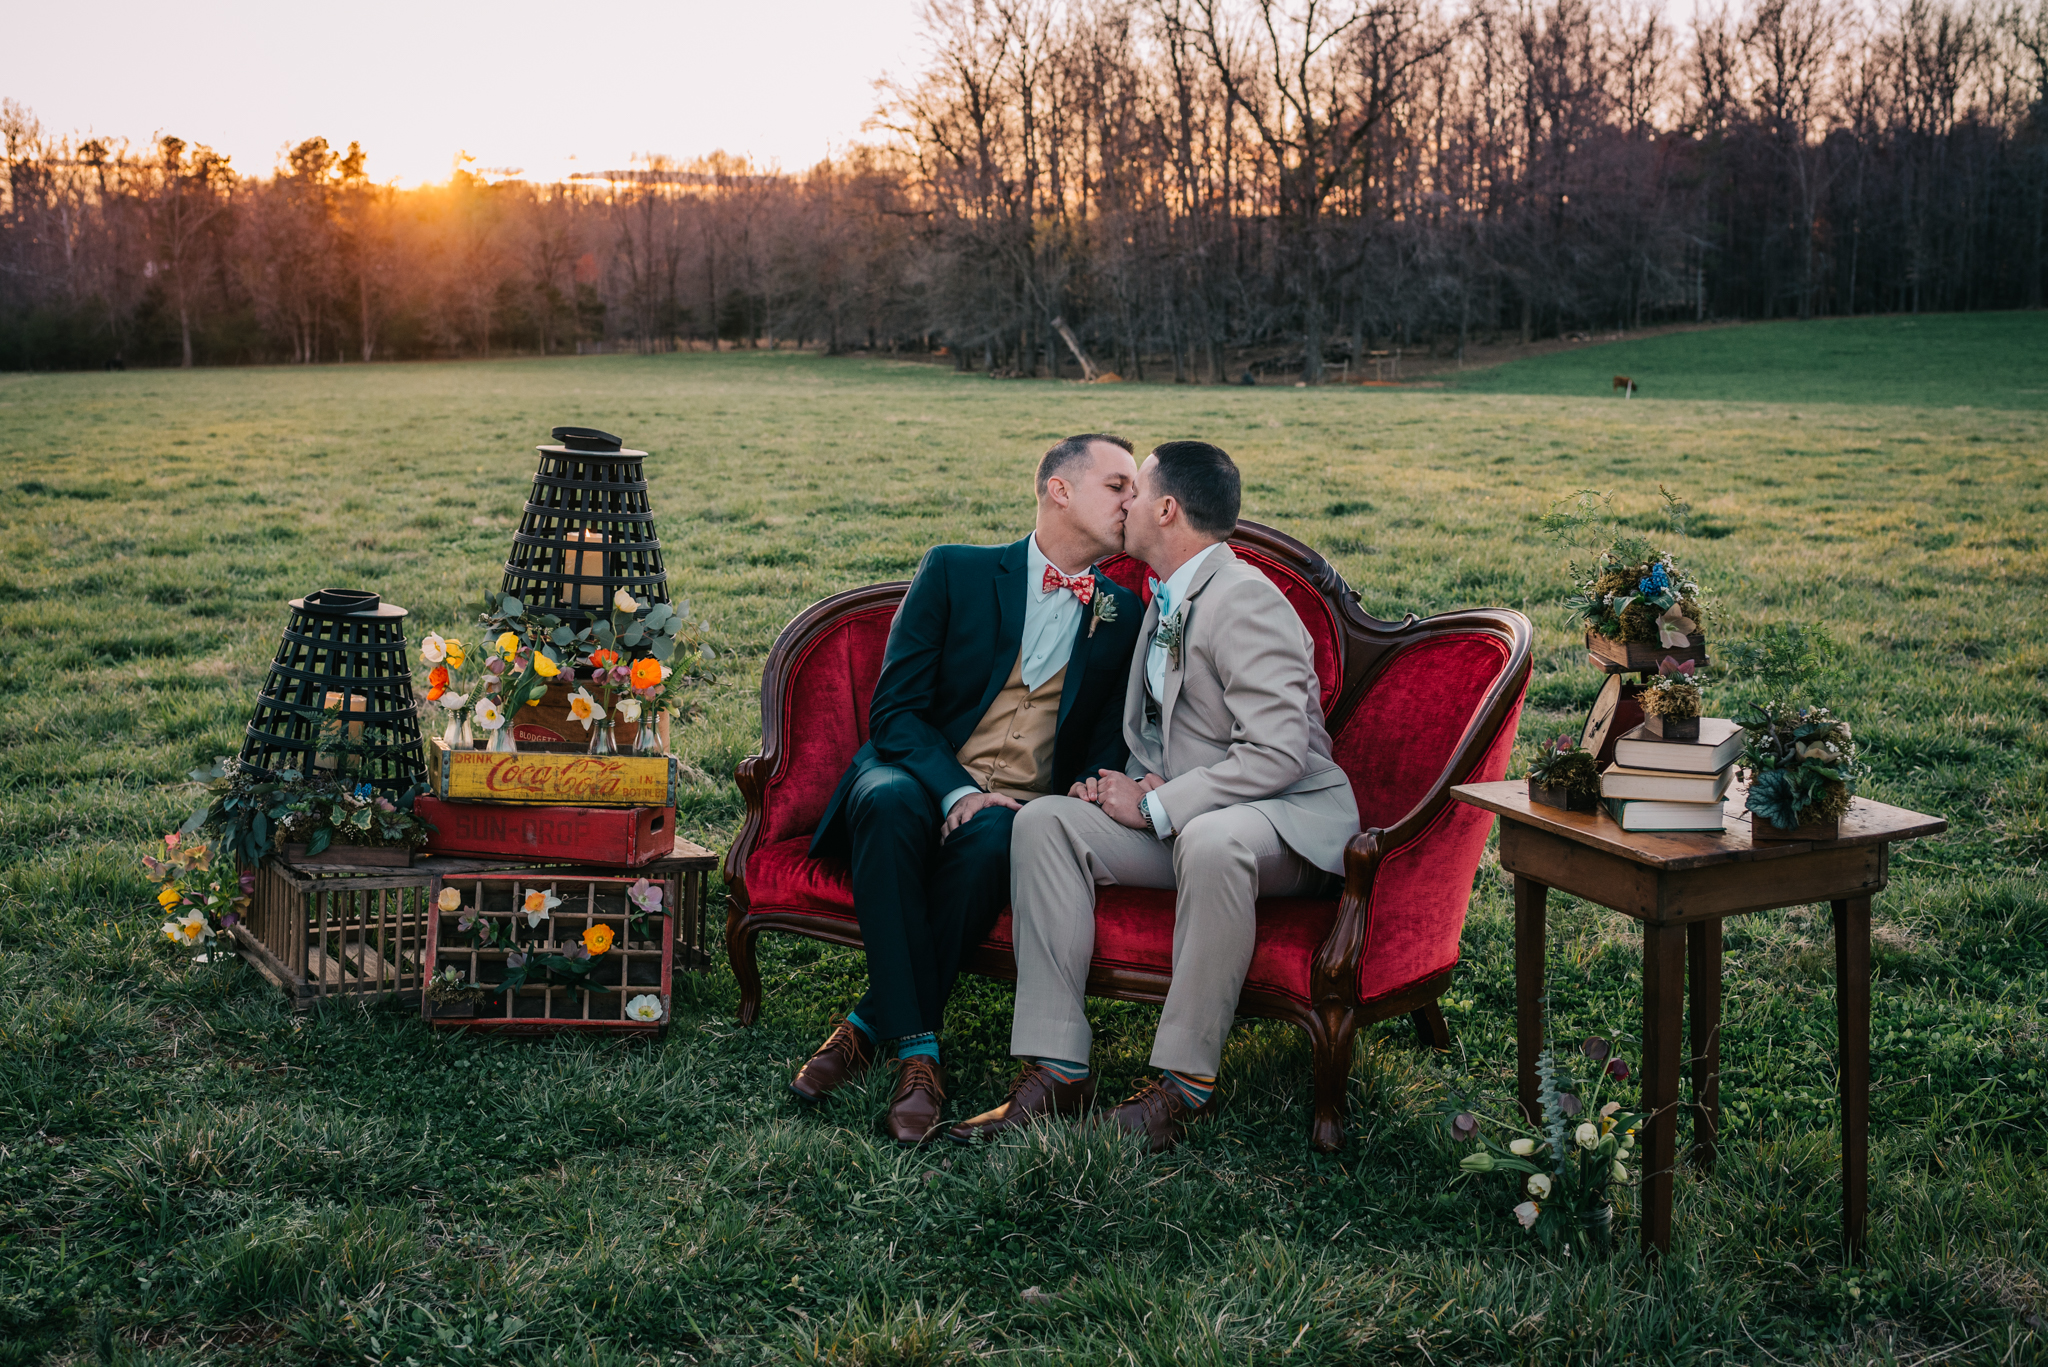 The grooms kiss on the red couch in the sunset during the rustic styled engagement session with Rose Trail Images at Windy Hill Farm near Raleigh, NC.